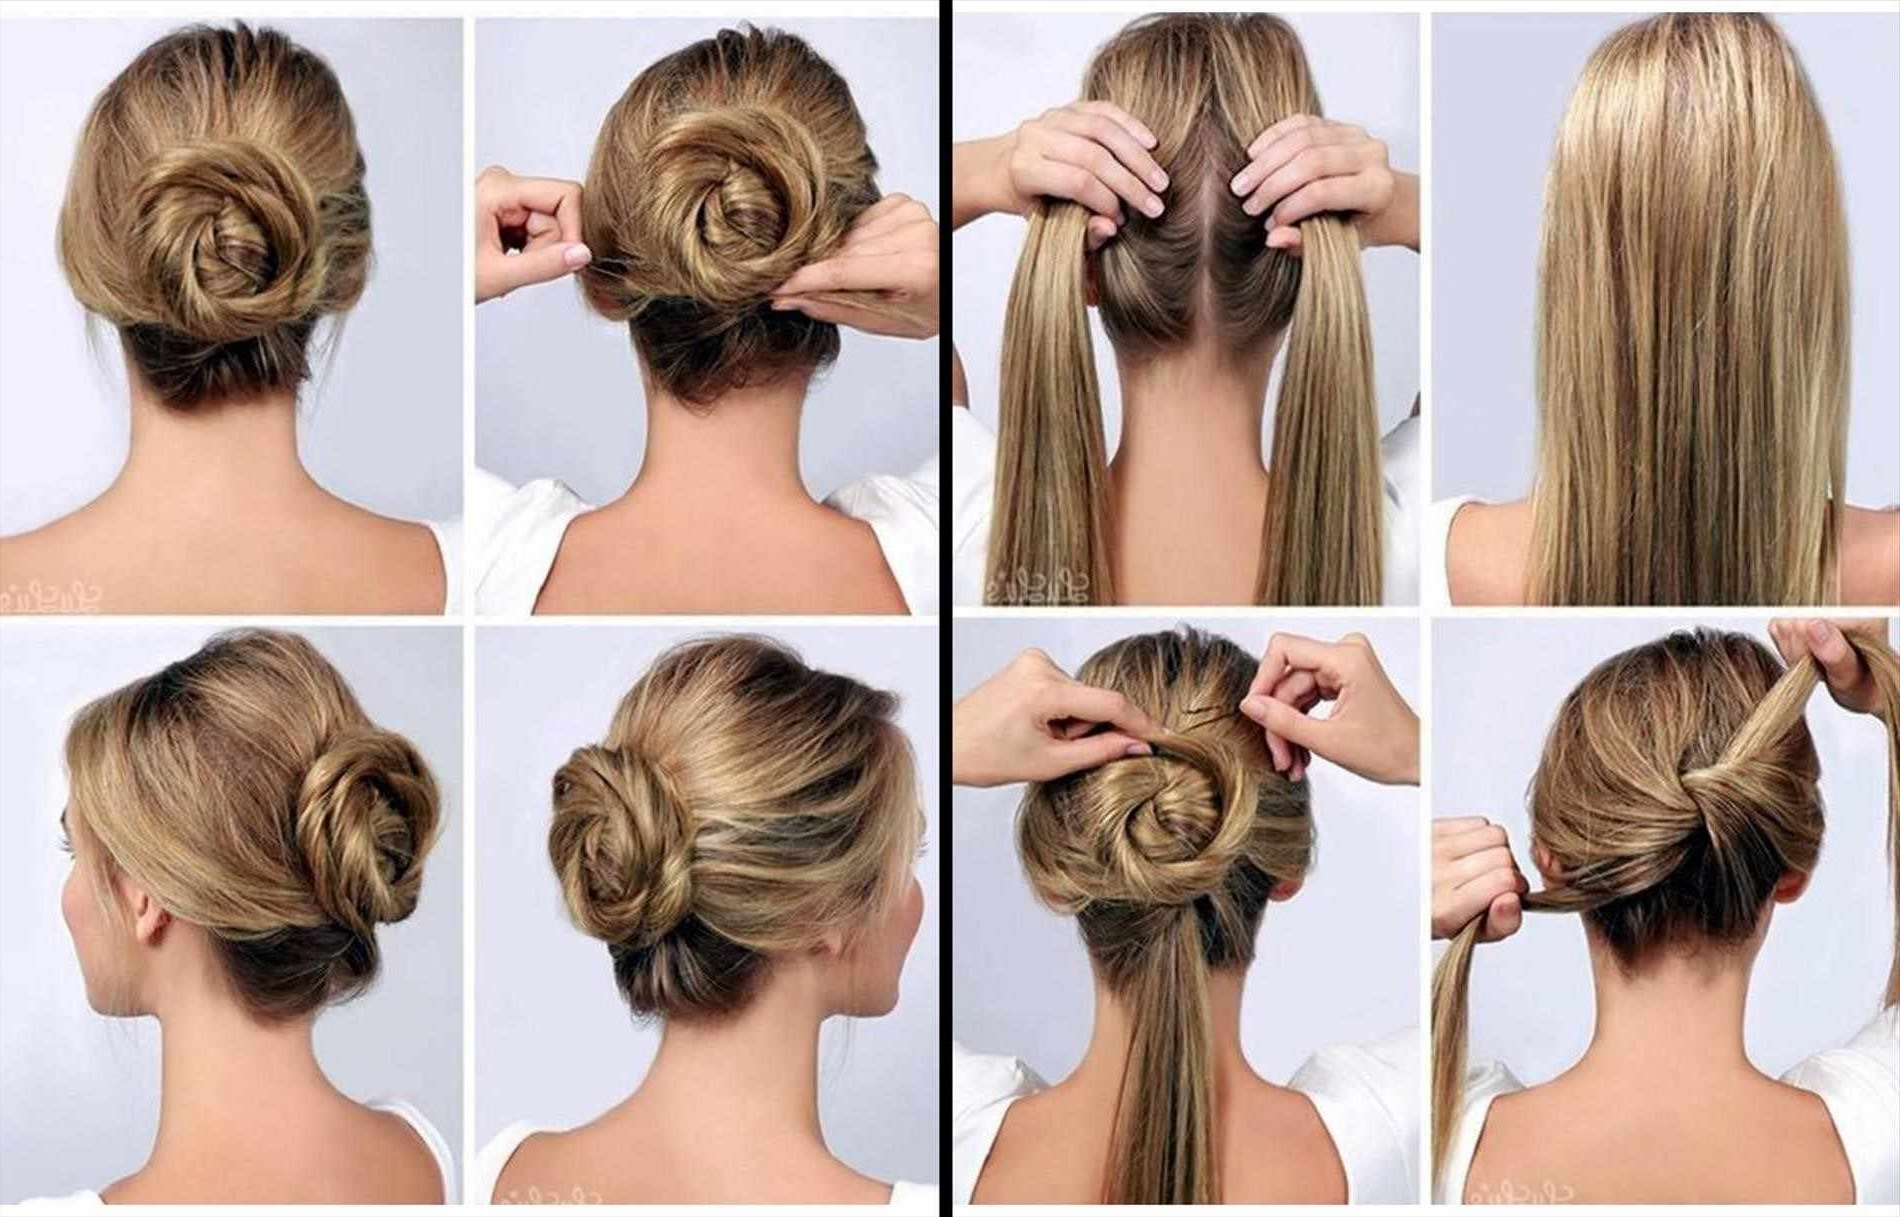 Youtube Trendy Updo Hairstyles Tutorials Easy Cute Hair Trendy Low For Updo Low Bun Hairstyles (Gallery 14 of 15)